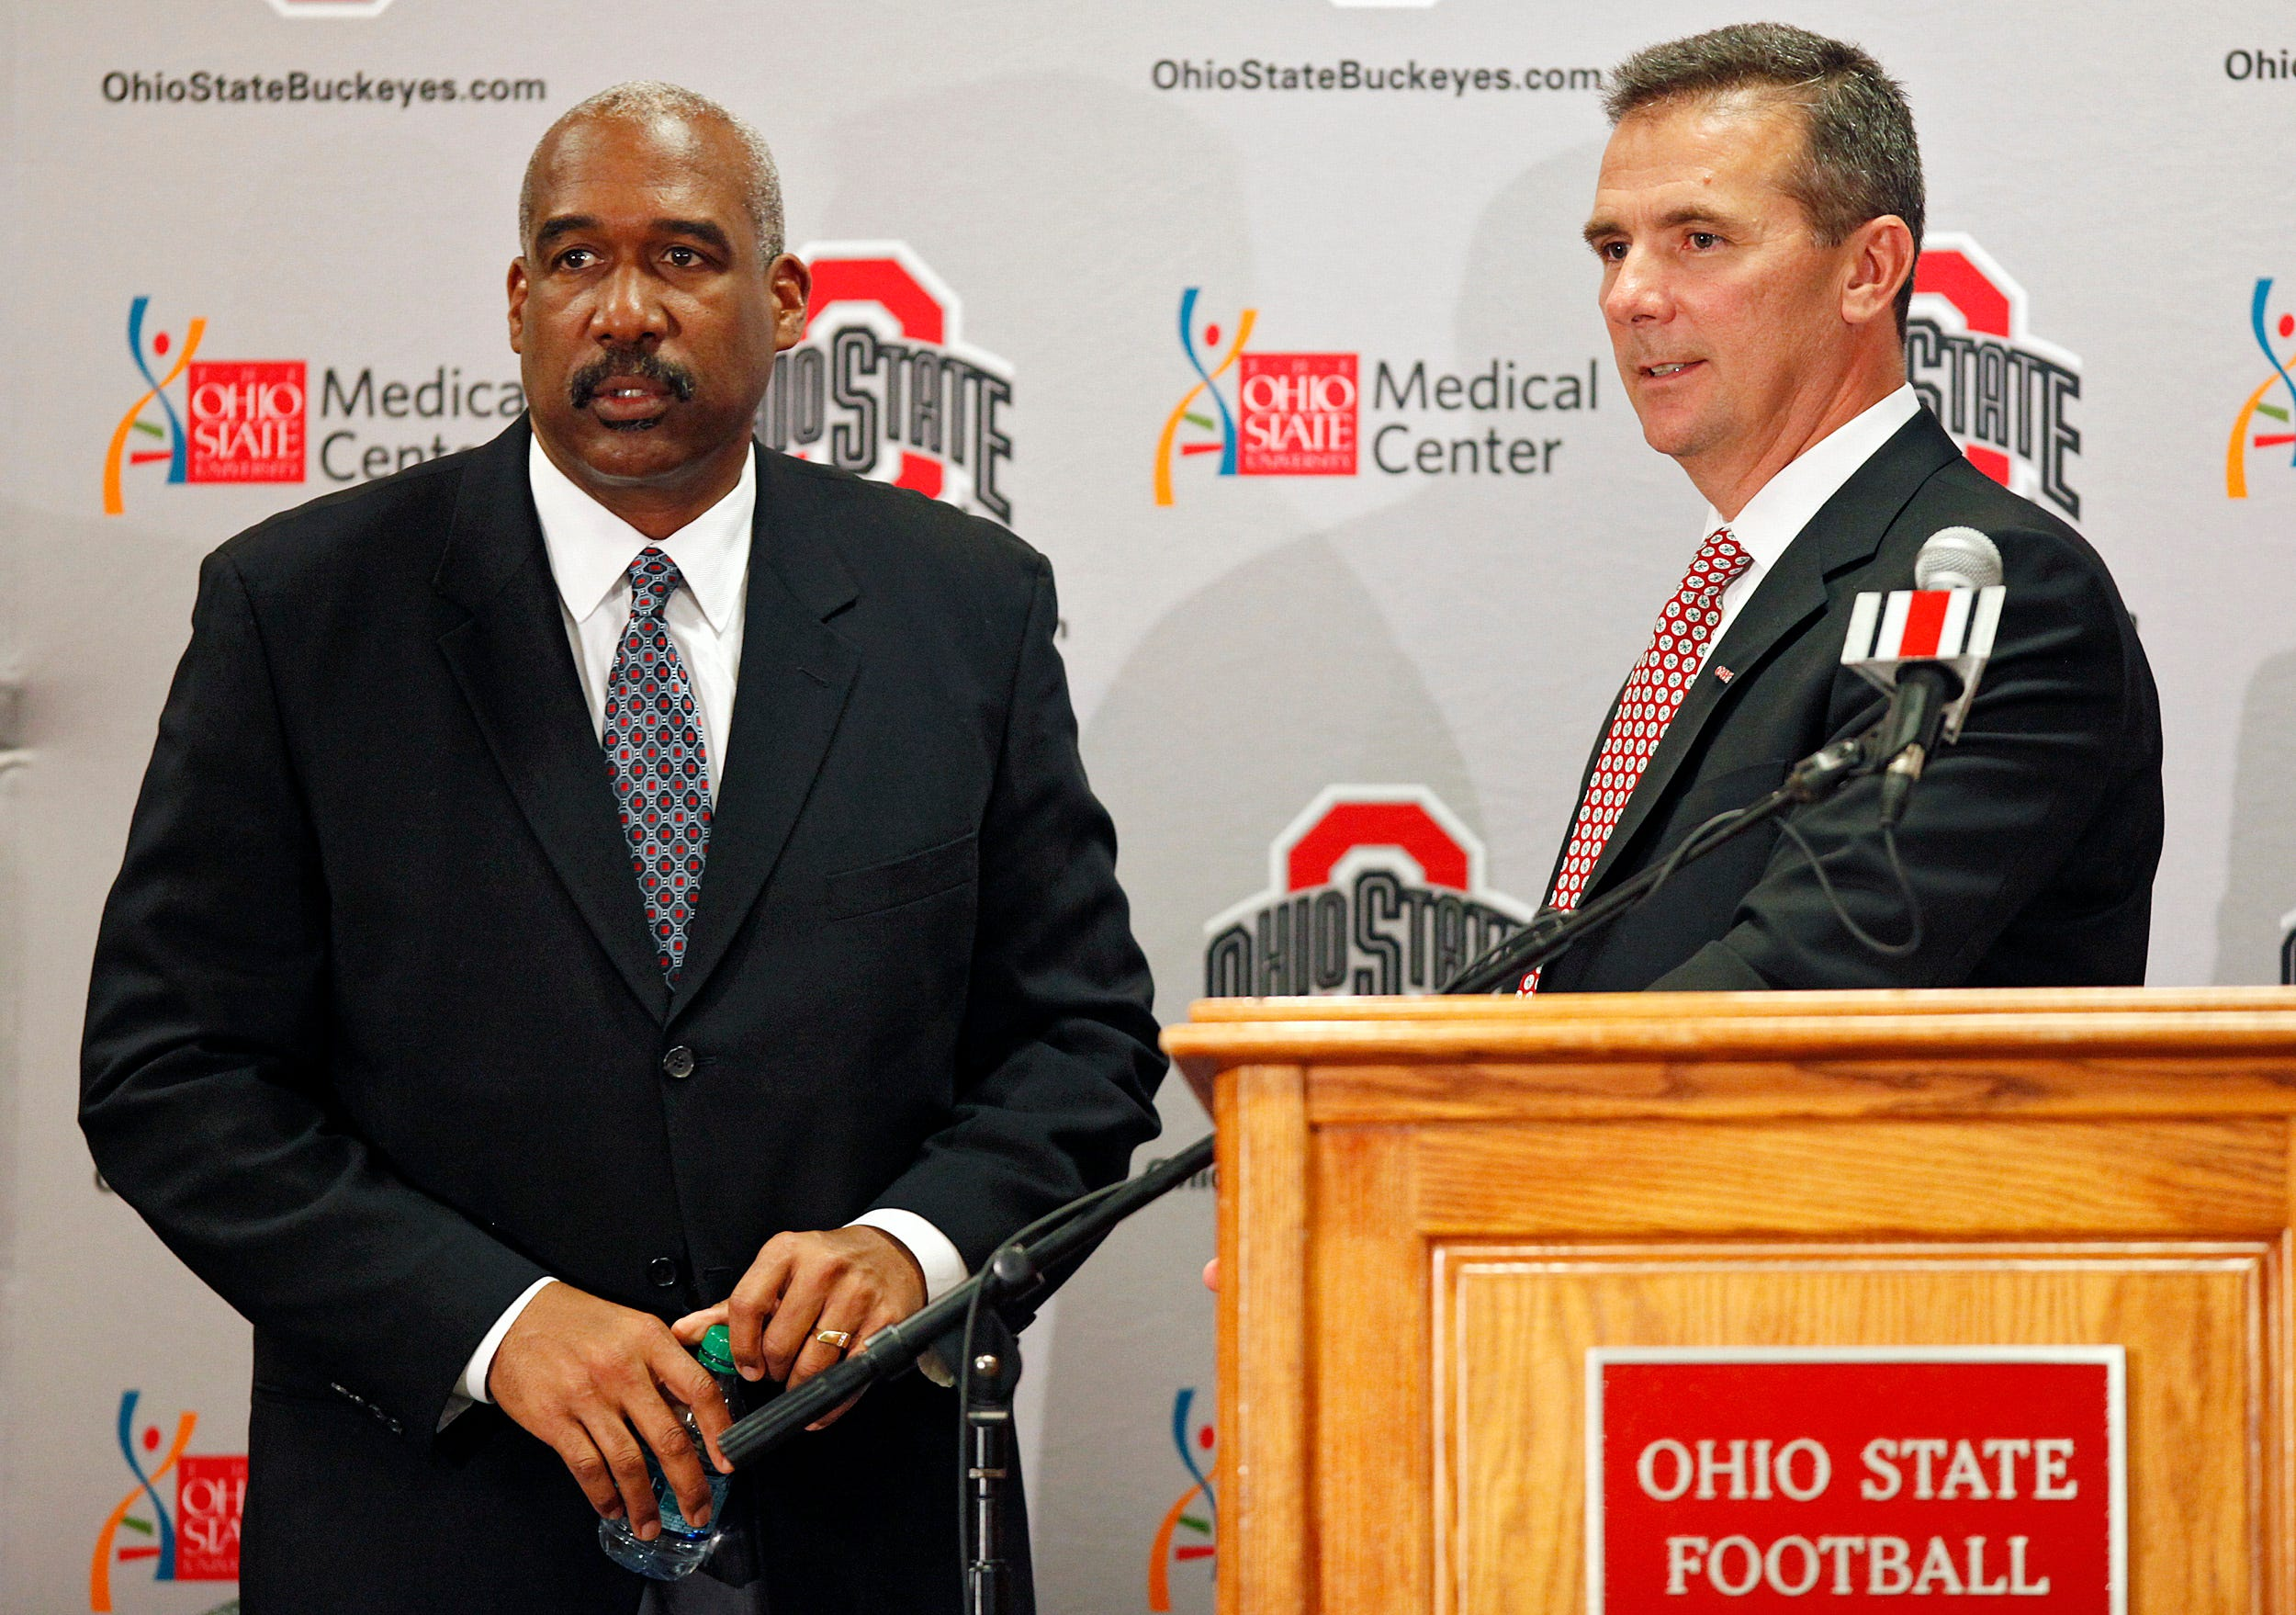 Athletic director Gene Smith and Urban Meyer during a press conference at the Fawcett Center on the campus of Ohio State in Columbus Ohio, November 28, 2011,